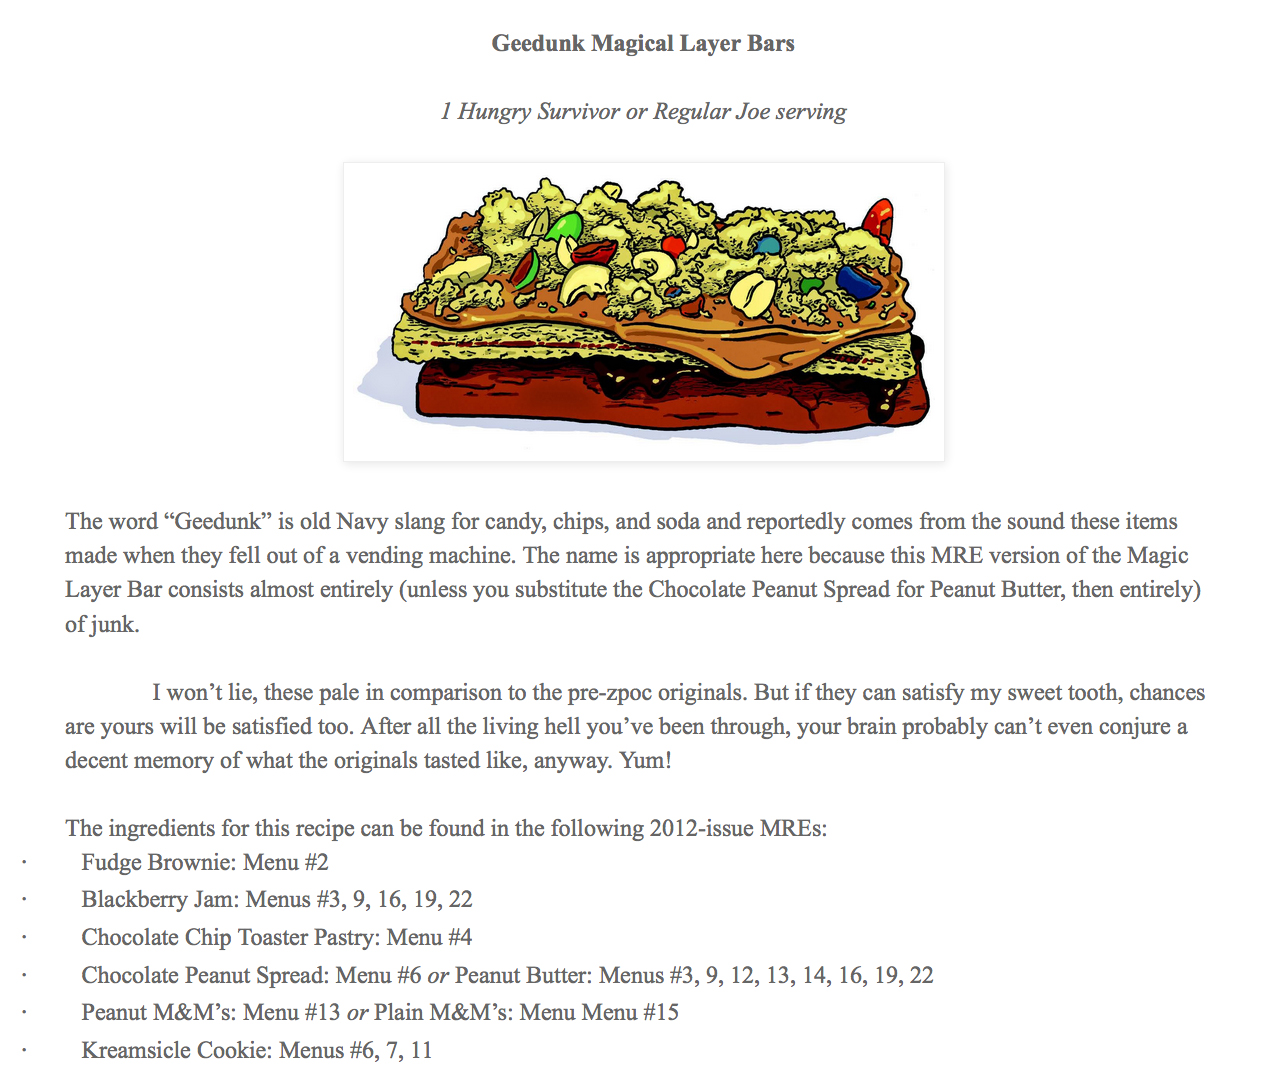 SpicedLatte Reads shares the recipe for MRE Geedunk Magical Layer Bars from The Art of Eating Through the Zombie Apocalypse.